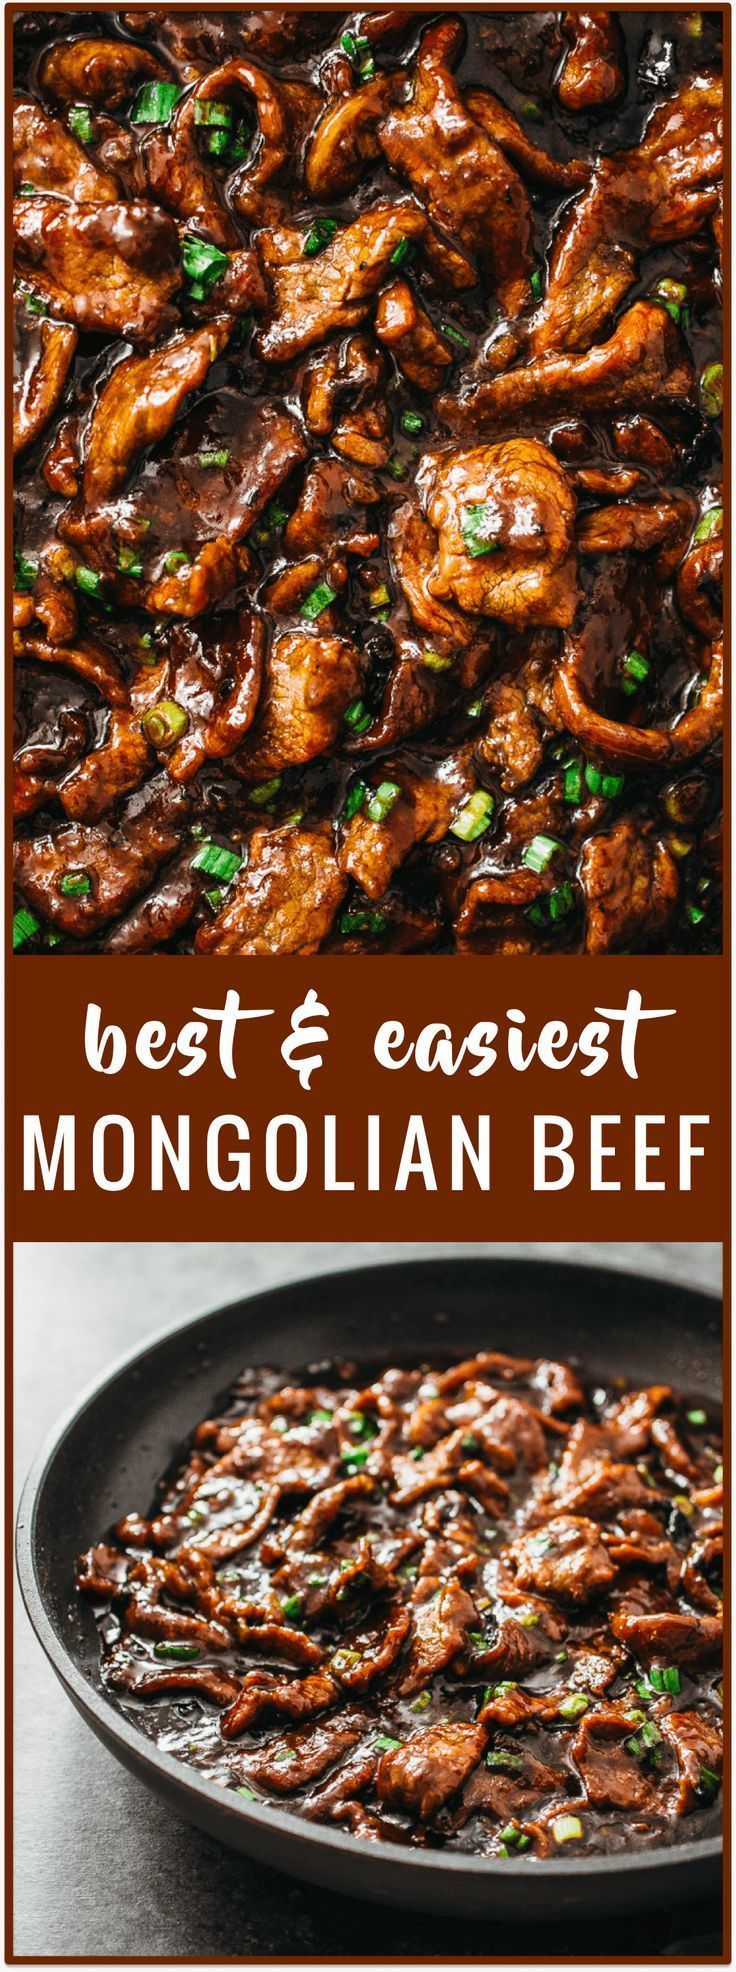 (No special ingredients - DMS)  Best authentic easiest mongolian beef - Mongolian beef is an easy and fast 15-minute stir-fry recipe with tender beef slices and a bold sticky sauce with a hint of spiciness. It's served with steamed rice or noodles.